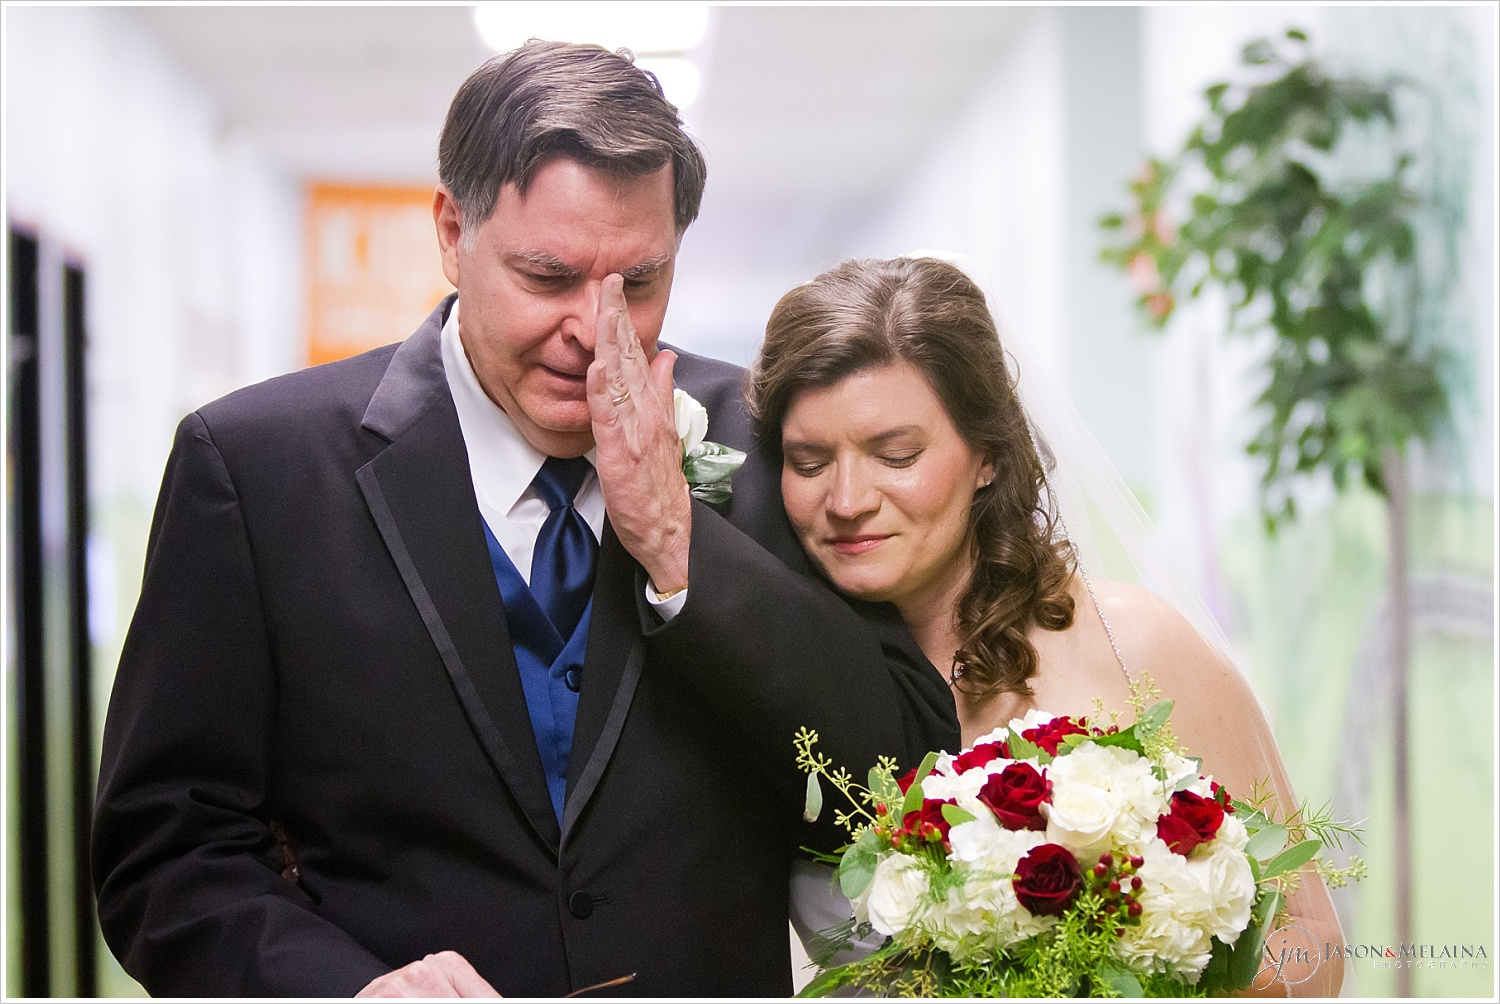 Bride's father cries while talking with bride before walking her down the aisle